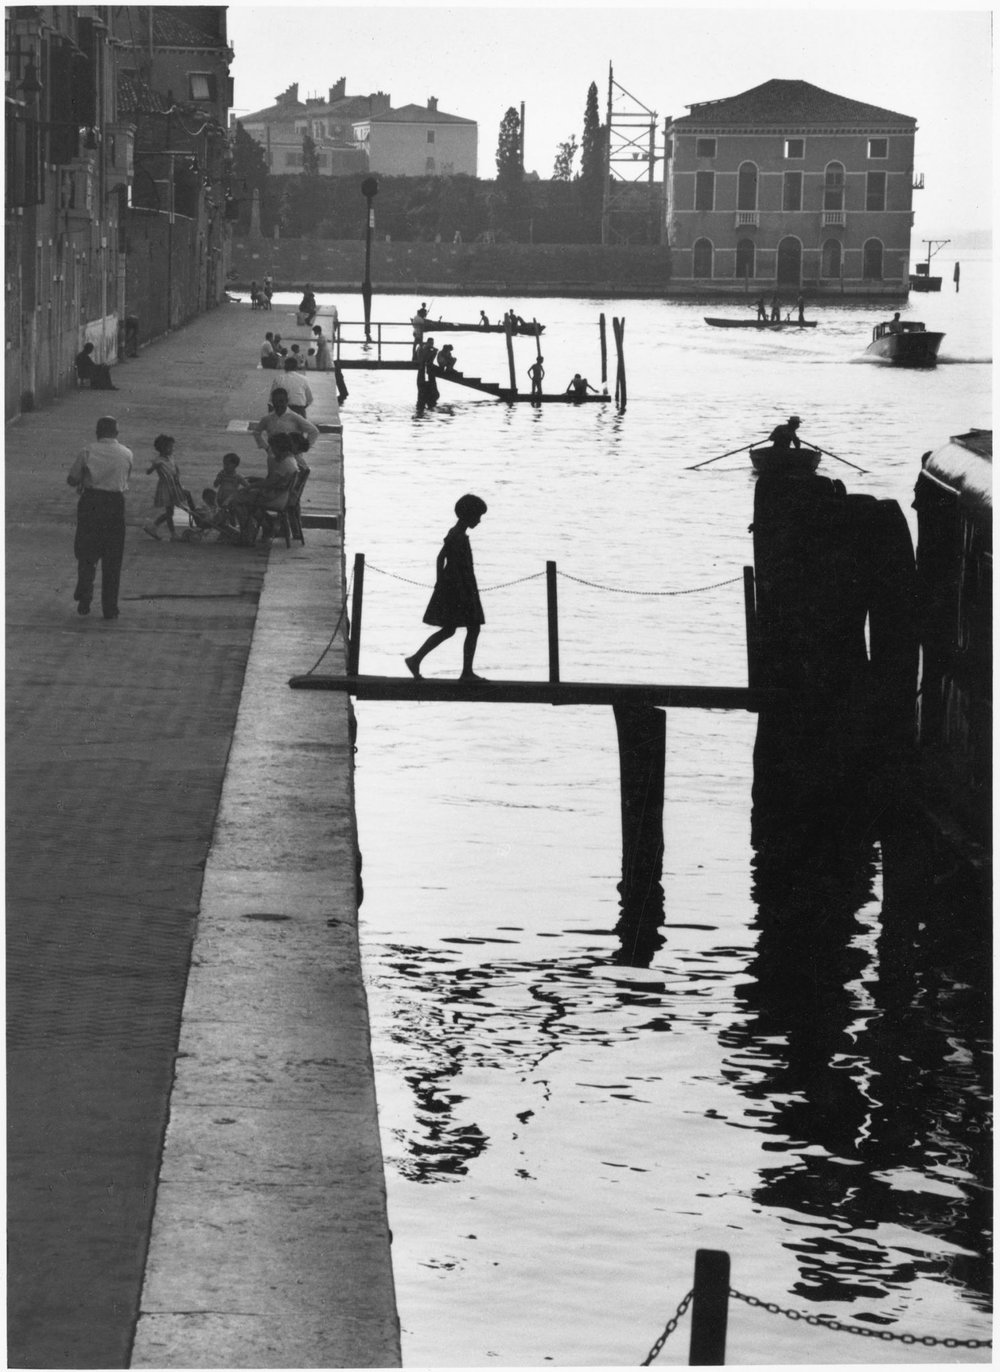 Image: Willy Ronis (1910-2009)